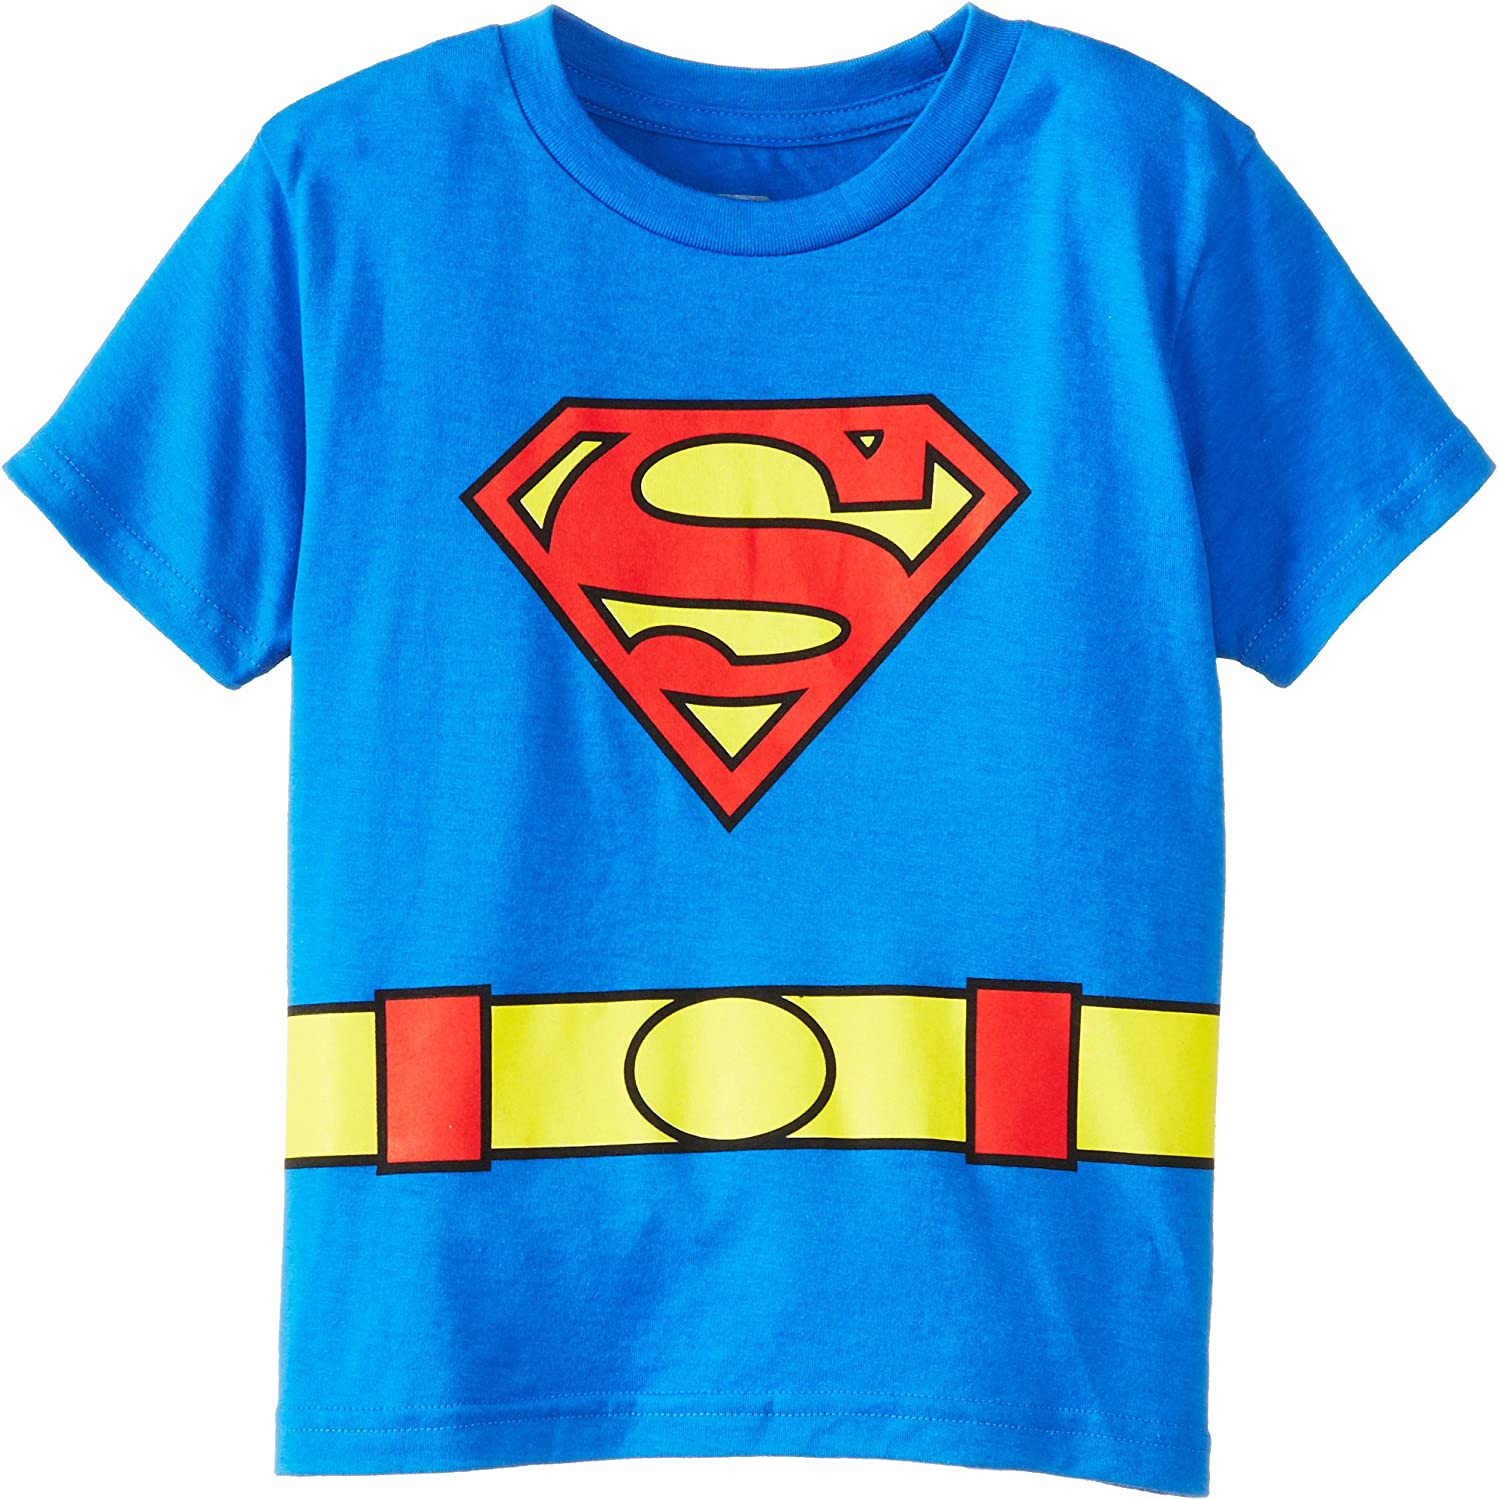 Kids Toddler Boys Superman Logo Pattern Shirt Cartoon Cotton Short Sleeve Tops